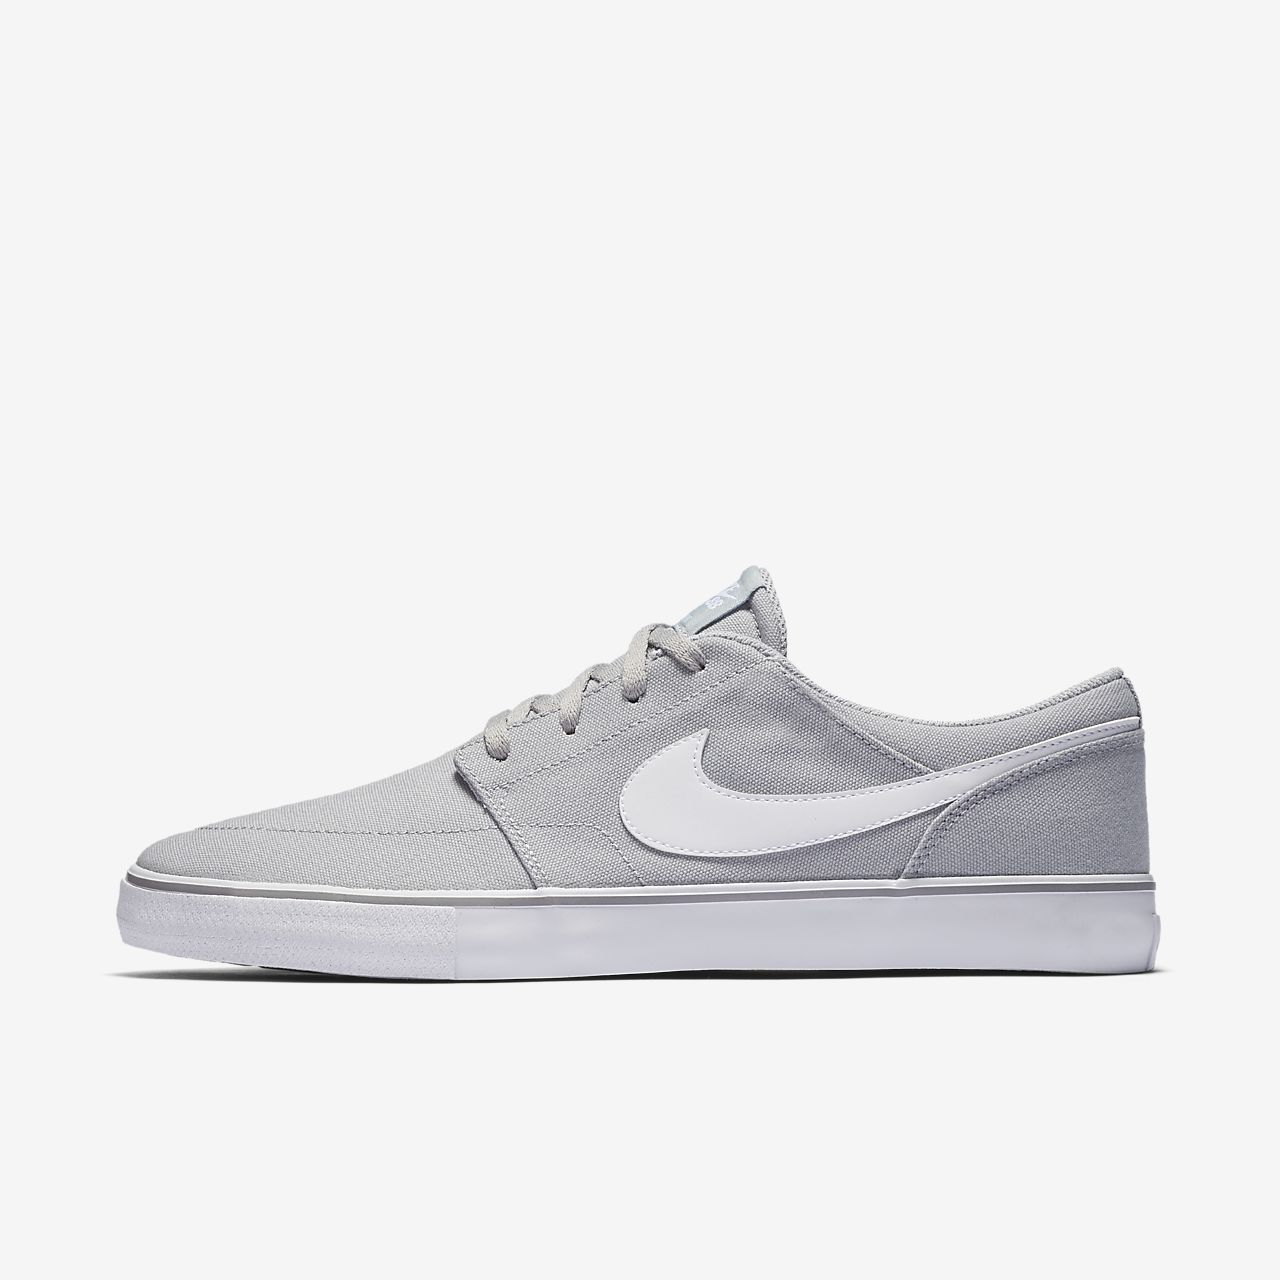 Nike SB Portmore II Boys Skateboarding Shoes Grey/White lV5689O